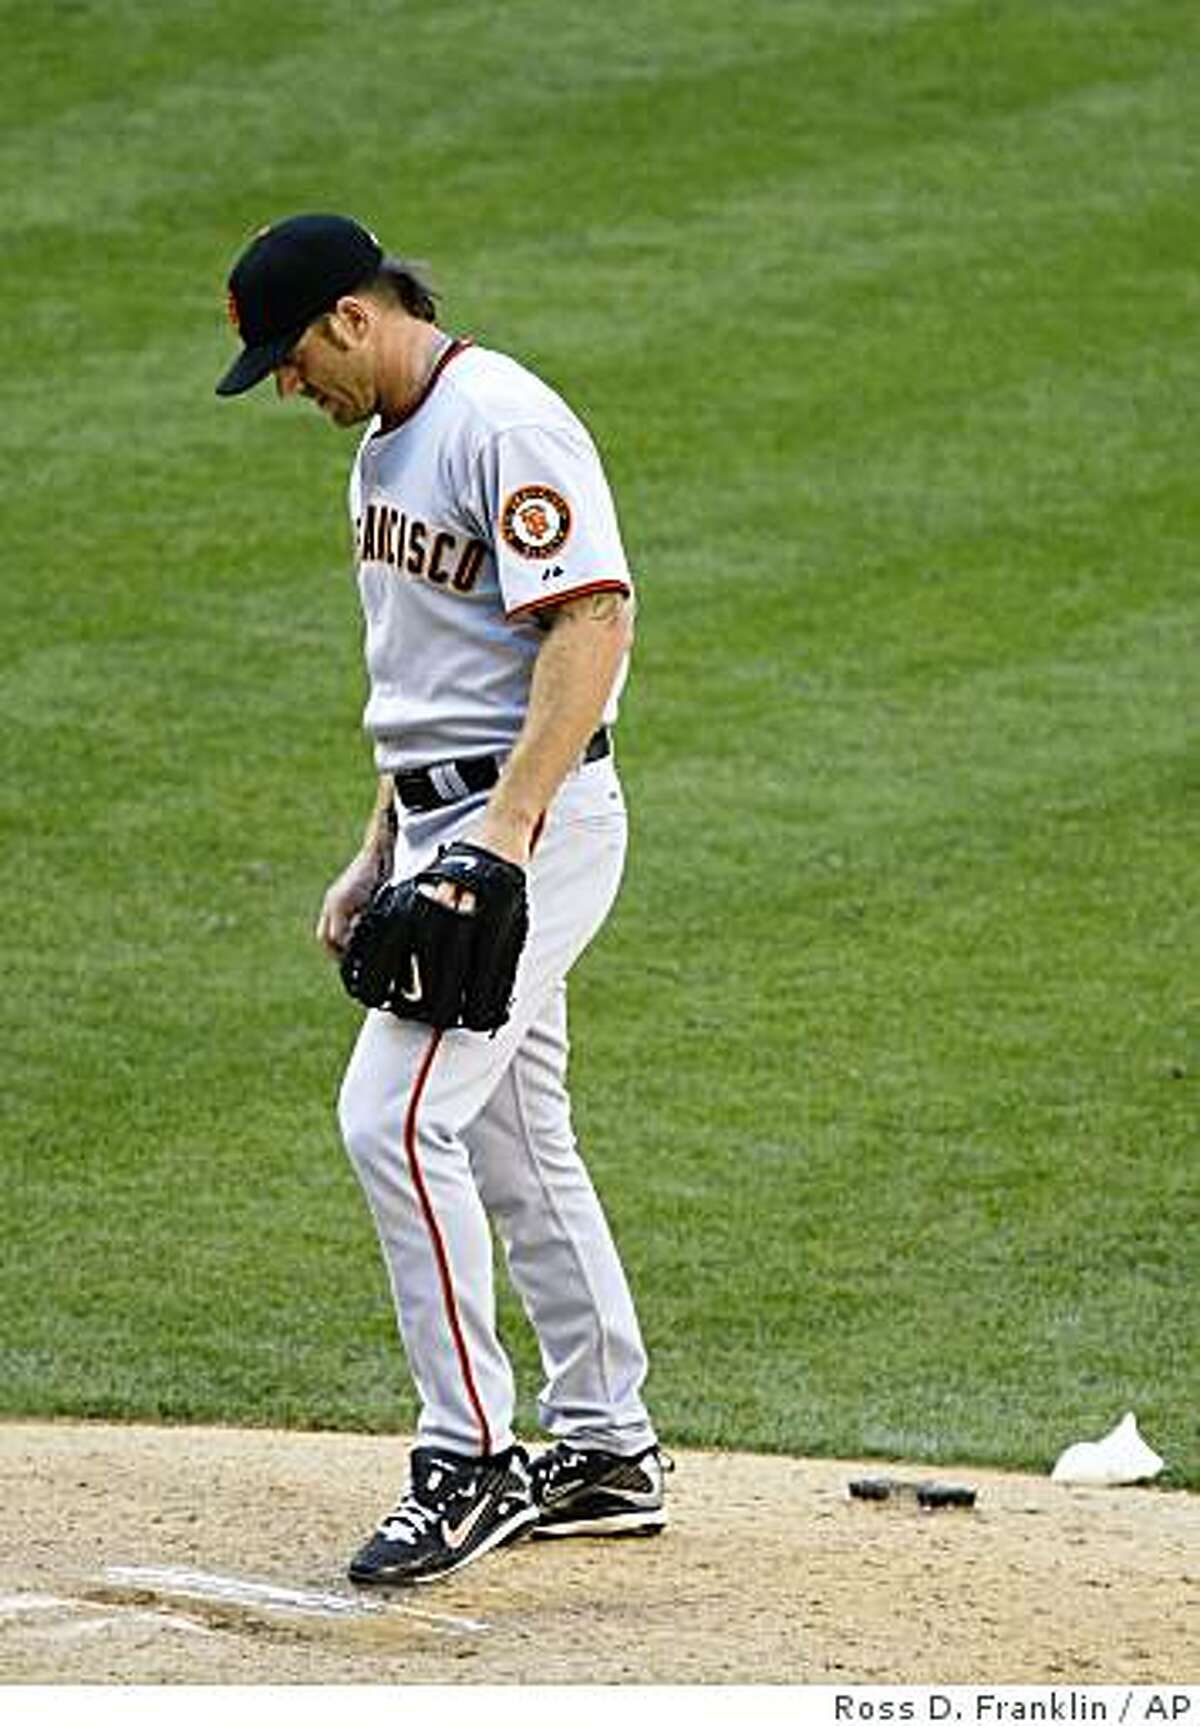 San Francisco Giants' Brian Wilson kicks the pitching rubber after giving up the game-tying home run to Arizona Diamondbacks' Justin Upton in the ninth inning of a baseball game Sunday, April 26, 2009, in Phoenix. (AP Photo/Ross D. Franklin)